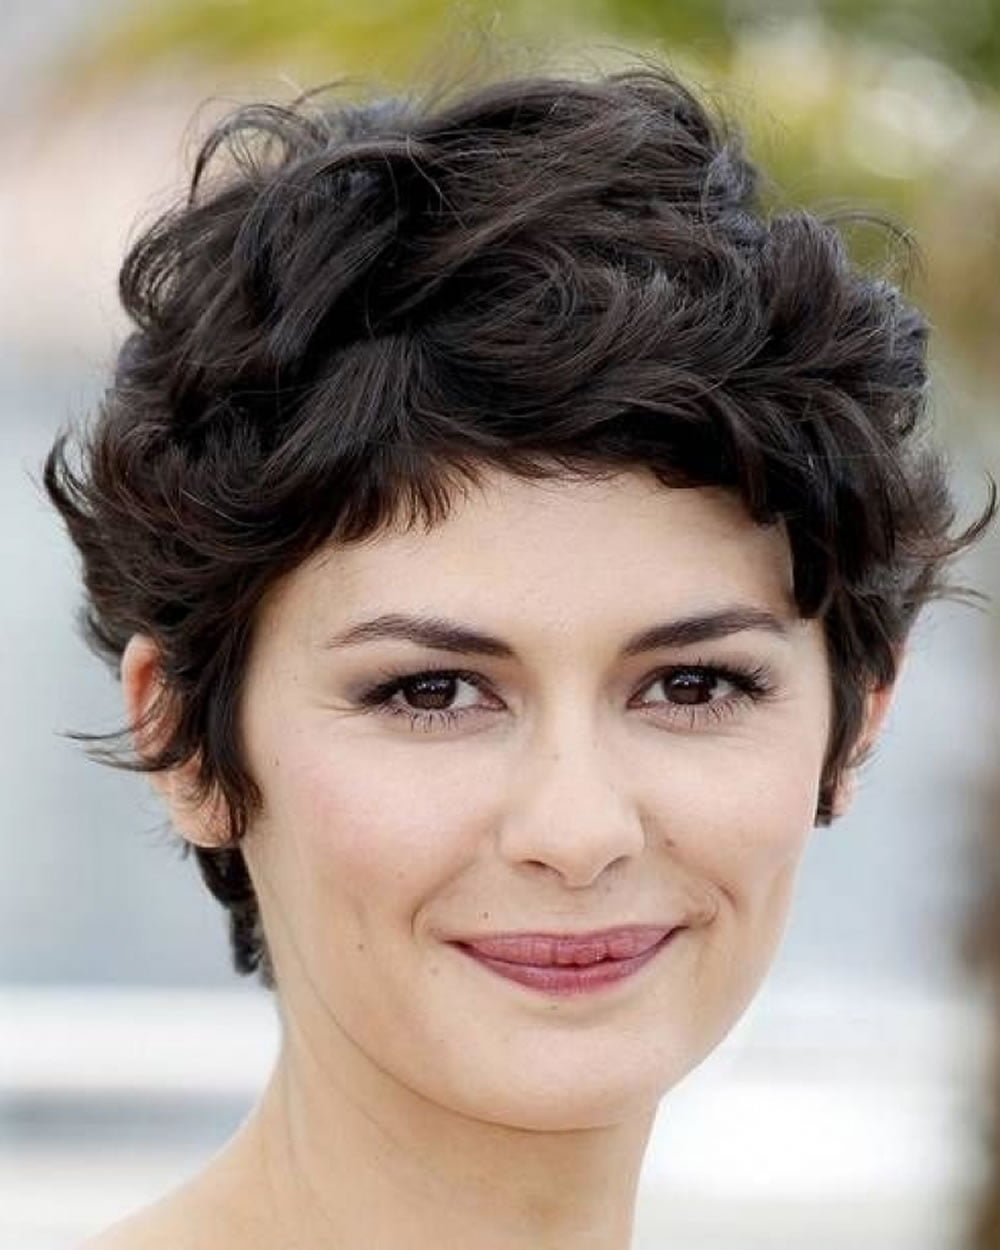 Hairstyles Round Fat Faces And Thin Hair